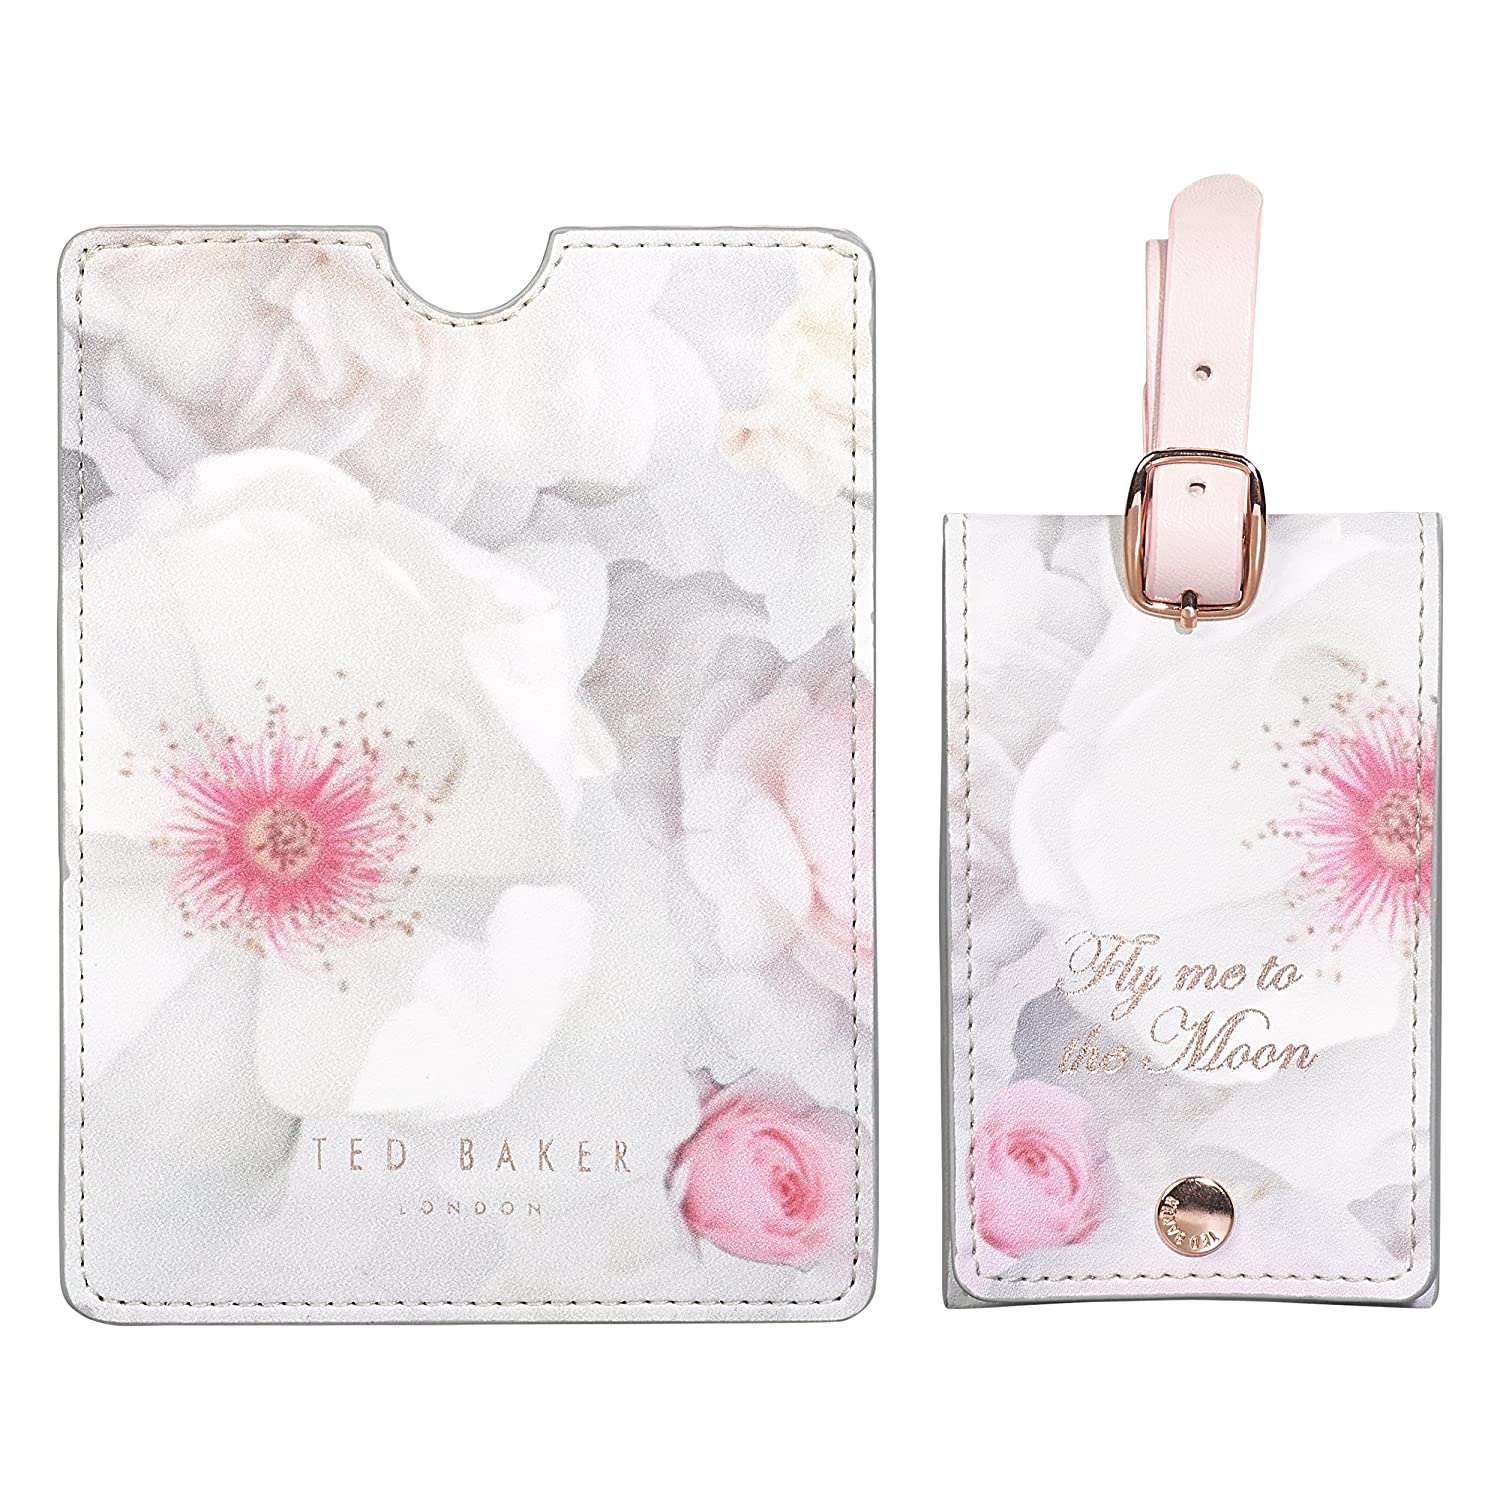 Ted Baker Luggage Tag And Passport Set | Chelsea Border Wild and Wolf ATED953